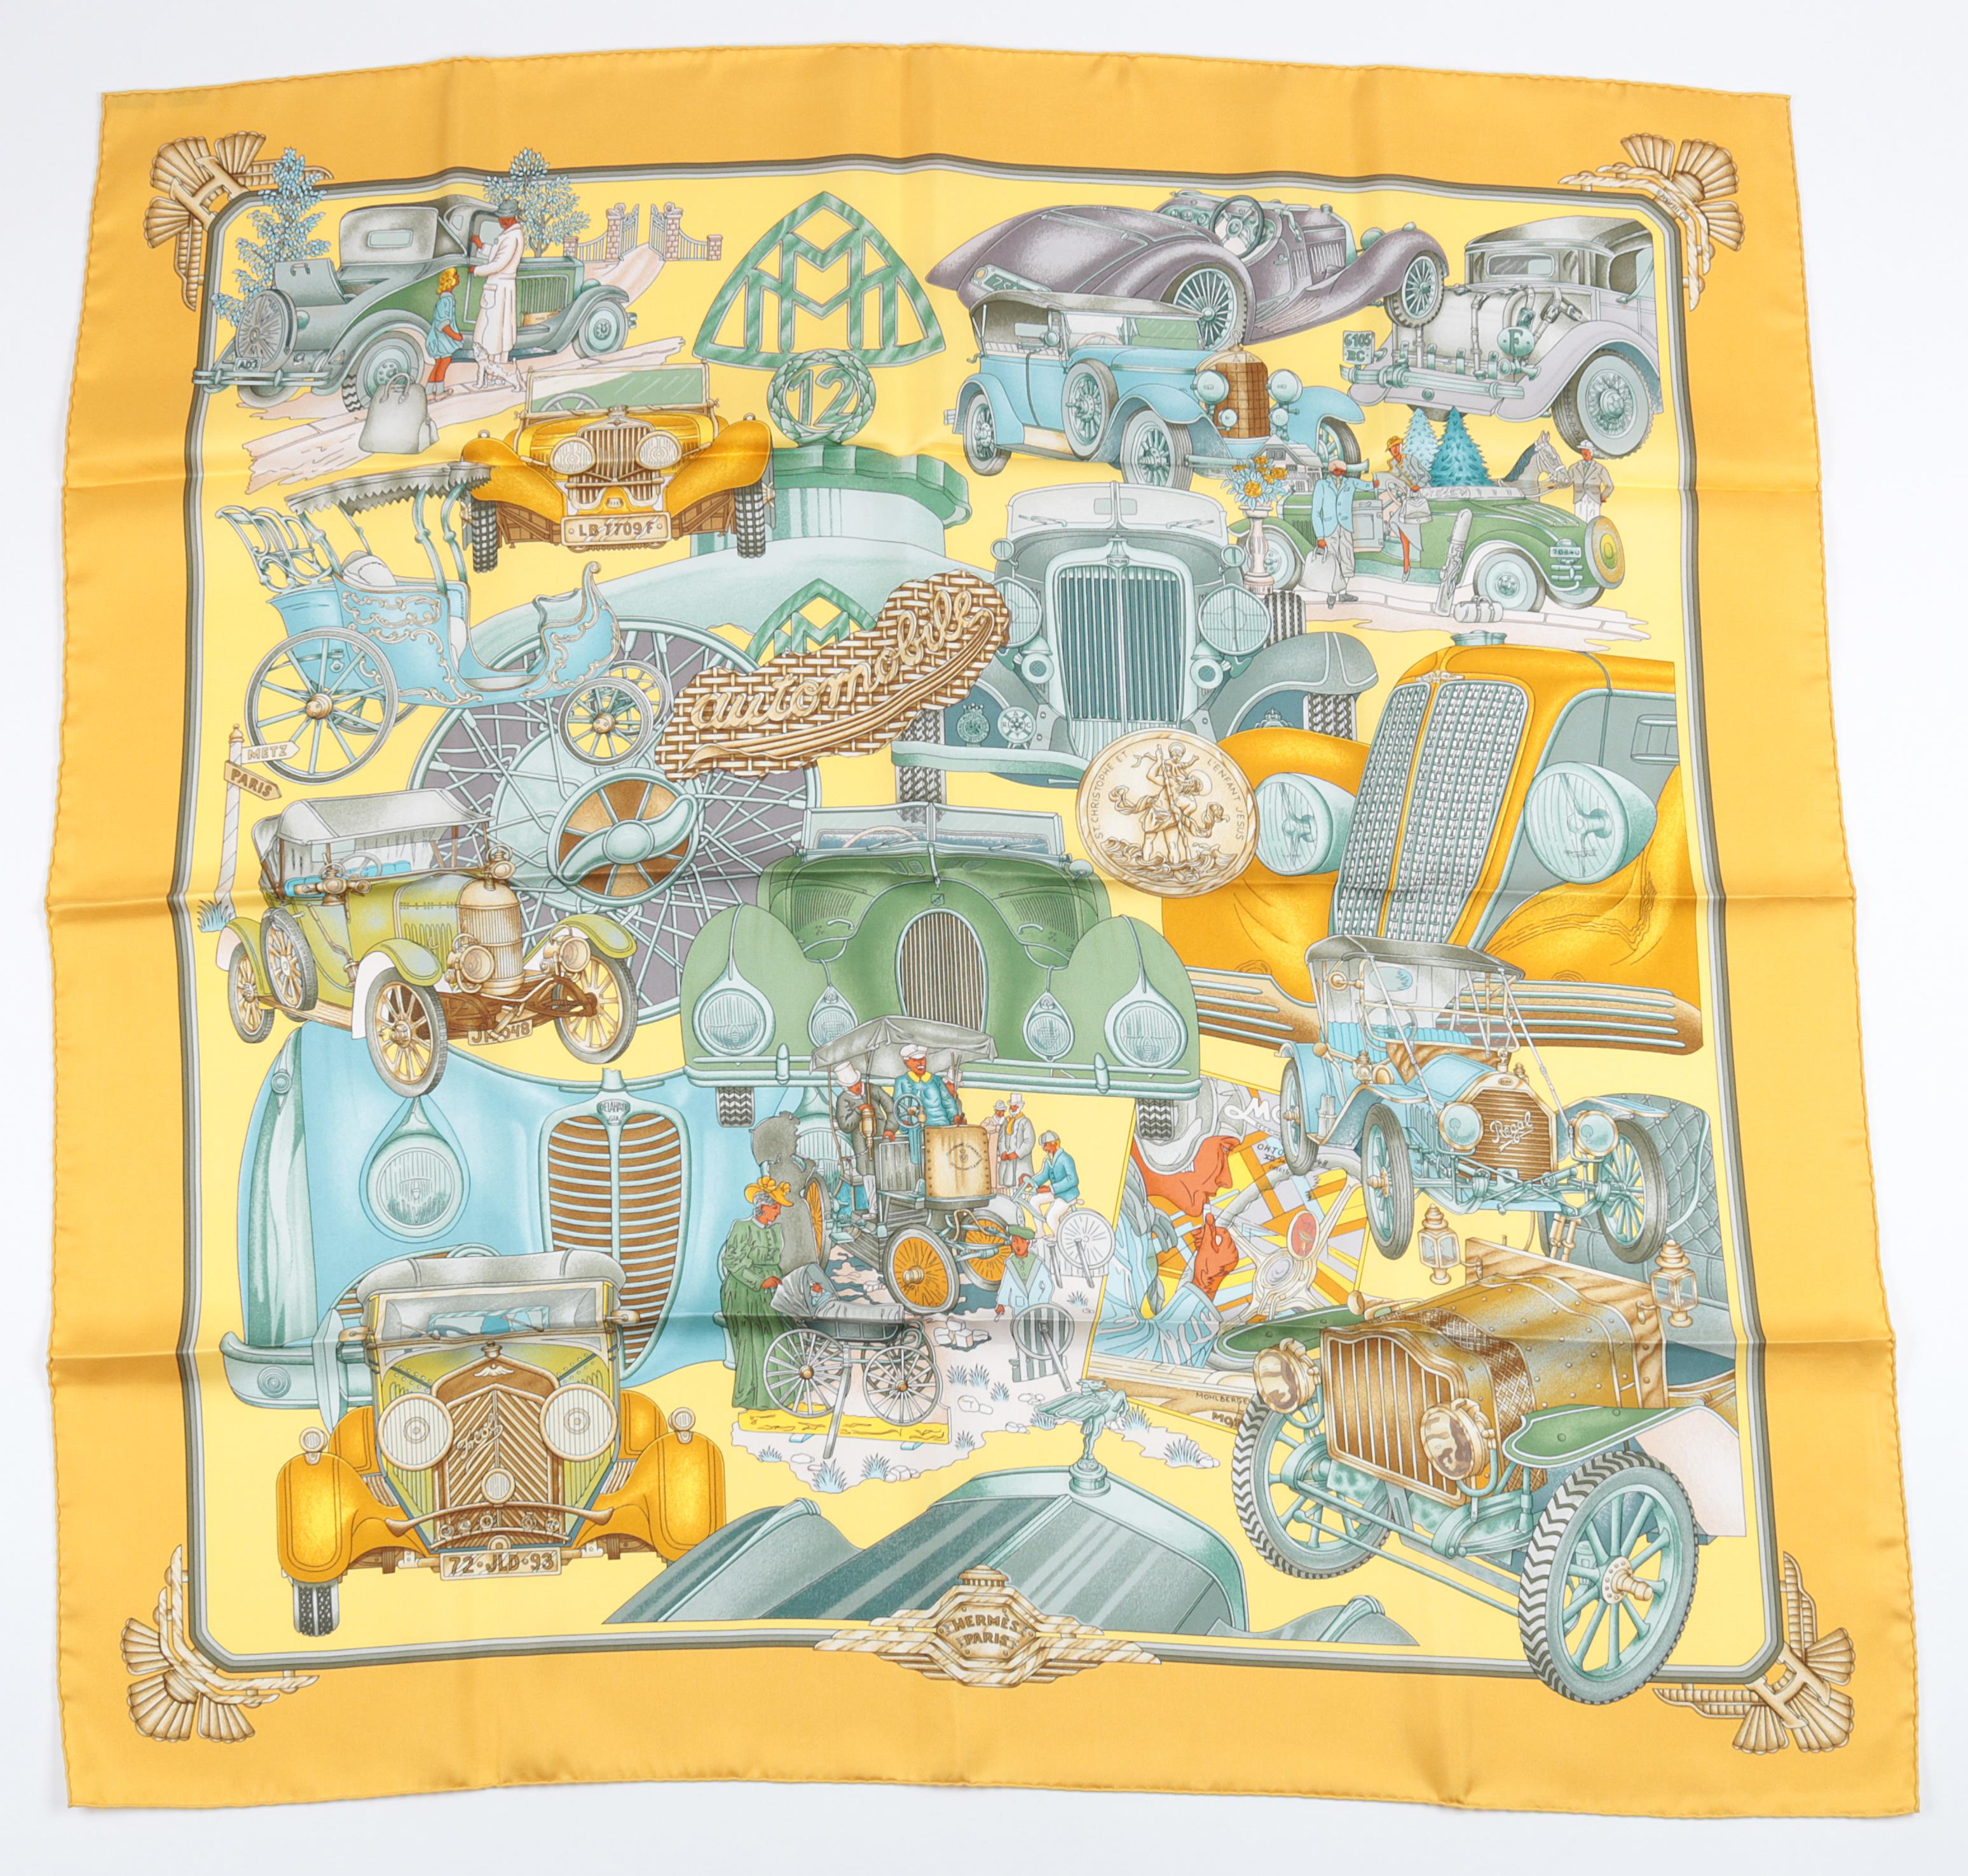 Hermès scarf 'Automobile', designed by Joachim Metz in 1996, various automobile models in blue, green, and yellow hues on yellow ground, hand-rolled hem, approx. 89 x 89 cm, starting bid €180